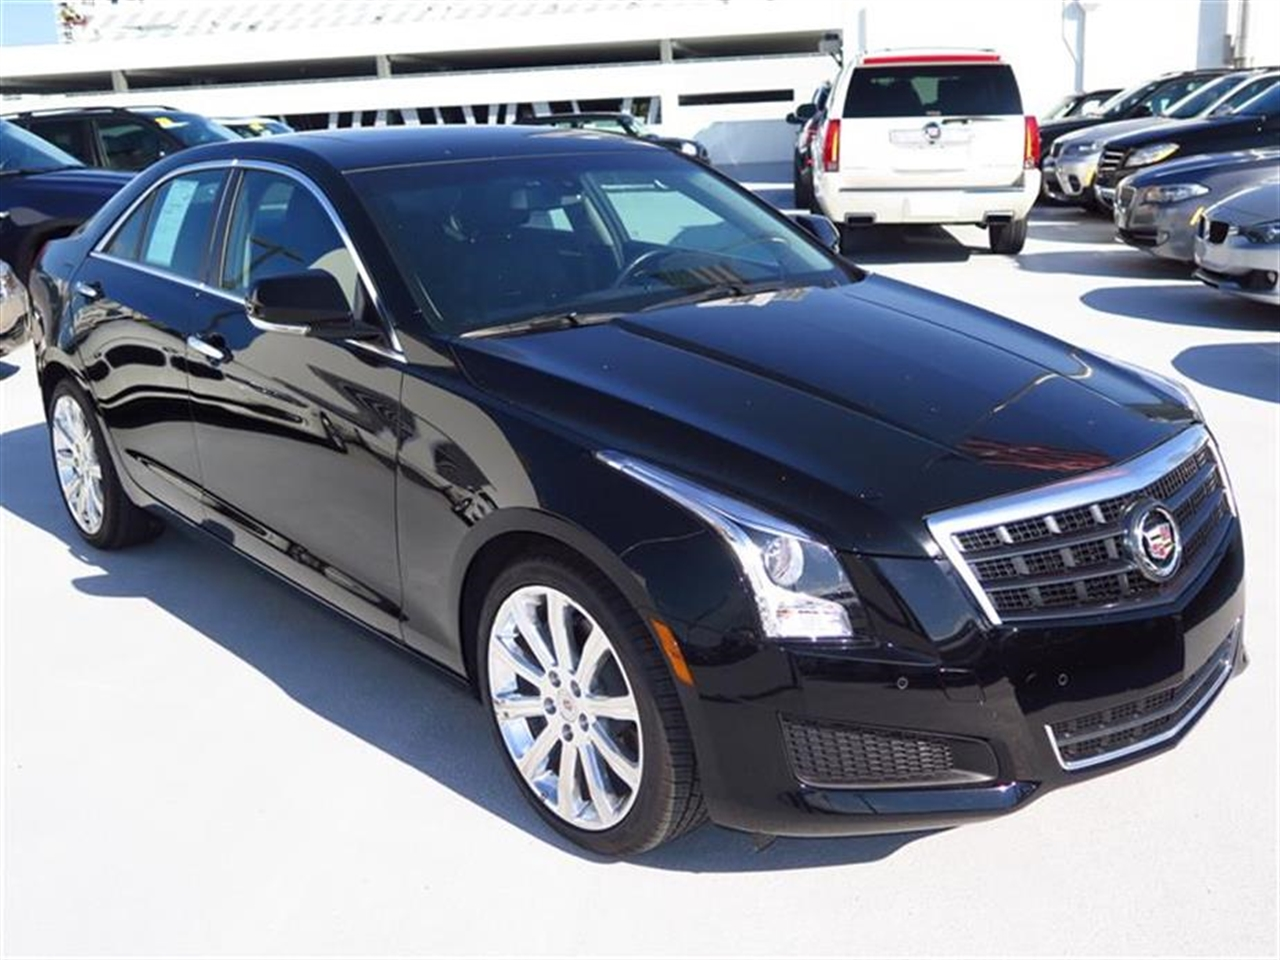 2013 CADILLAC ATS 4dr Sdn 20L Luxury RWD 9185 miles Adaptive Remote Start Not available with M